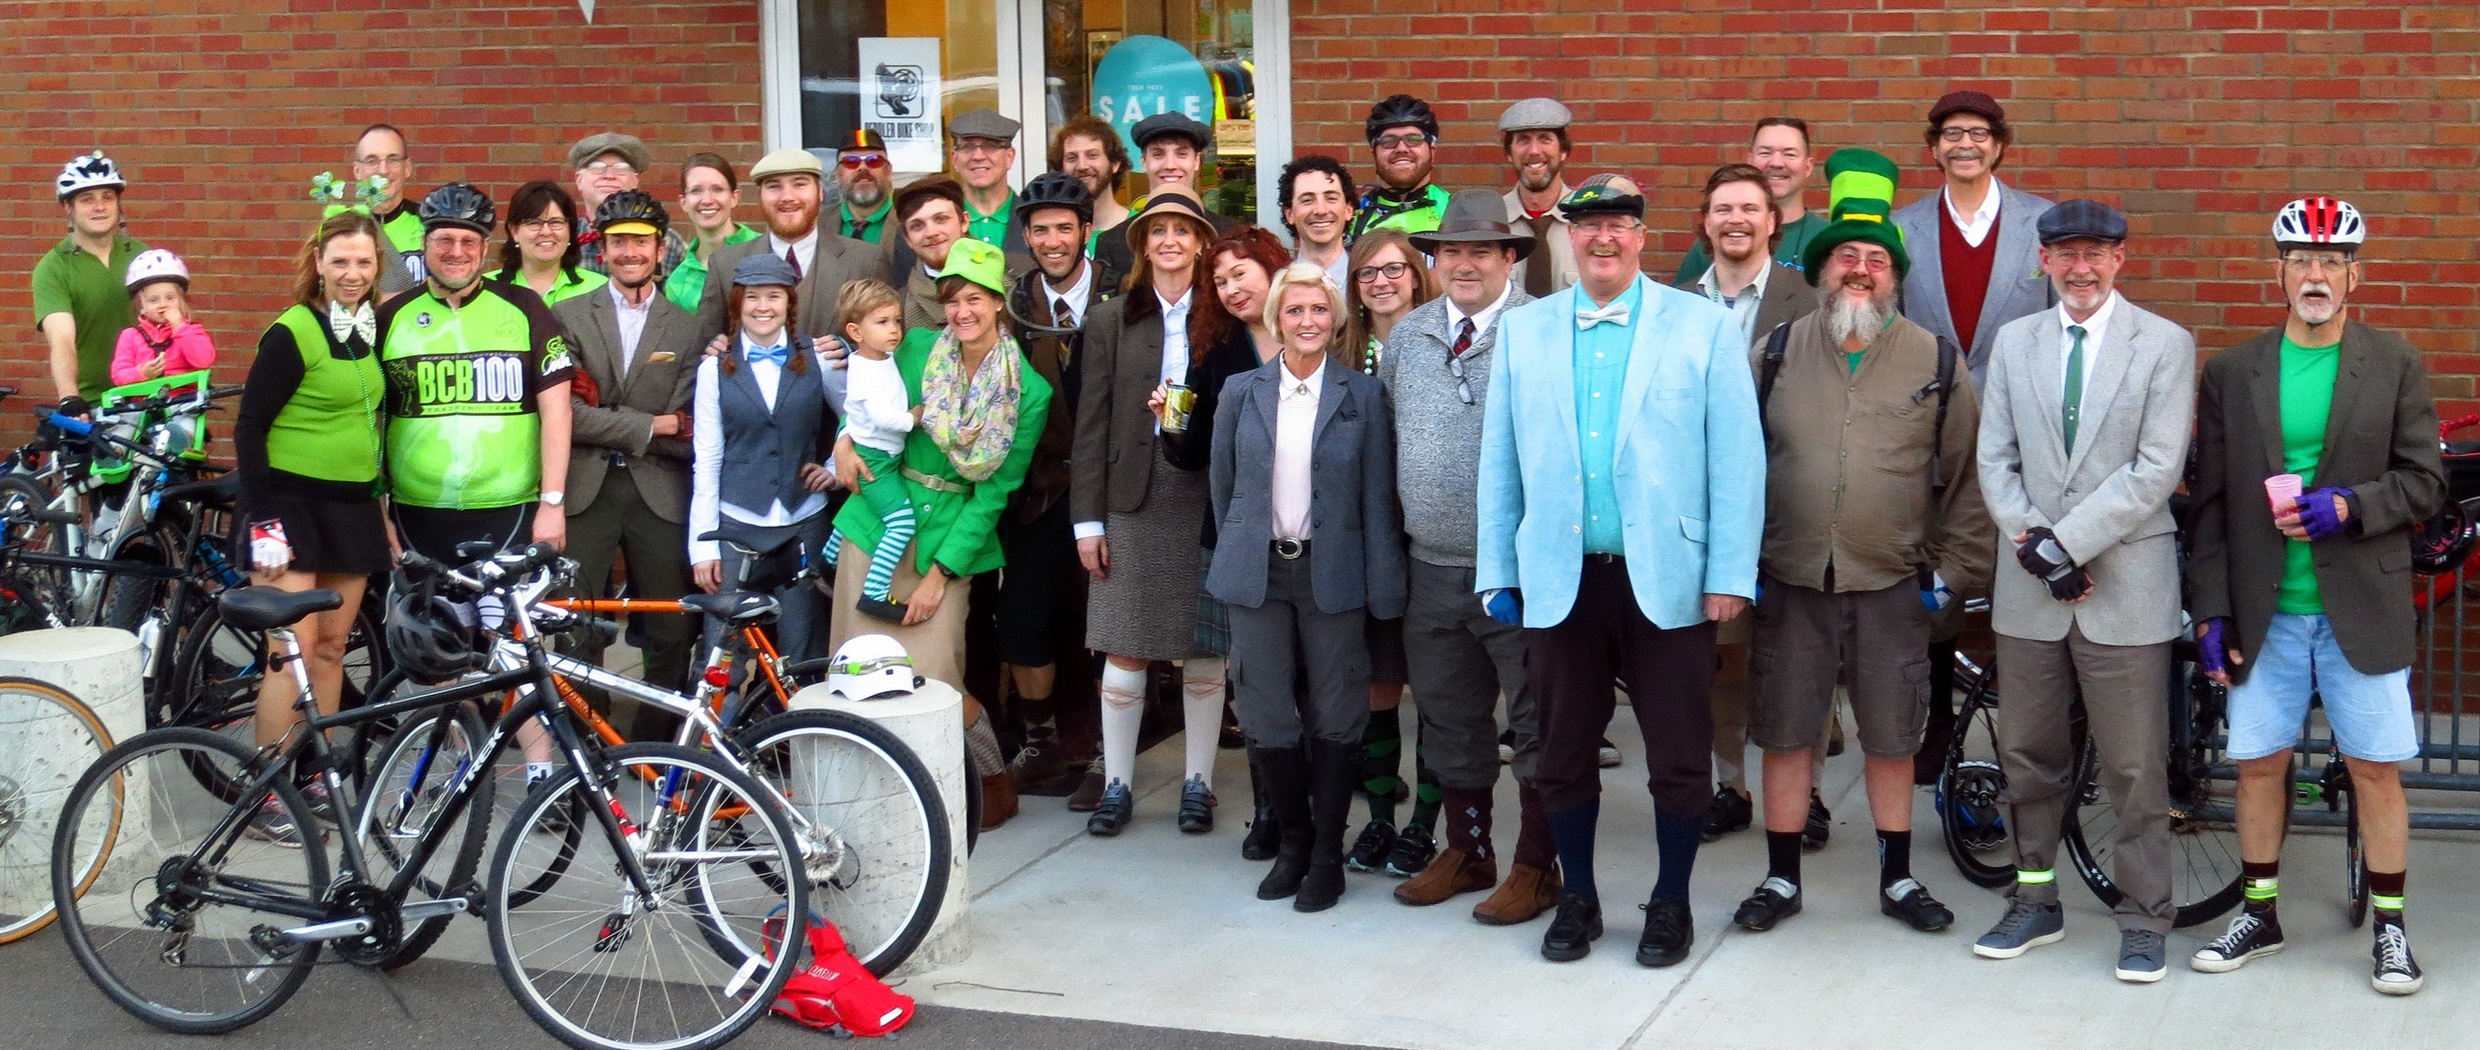 Memphis Peddler Tweed Ride Group Shot